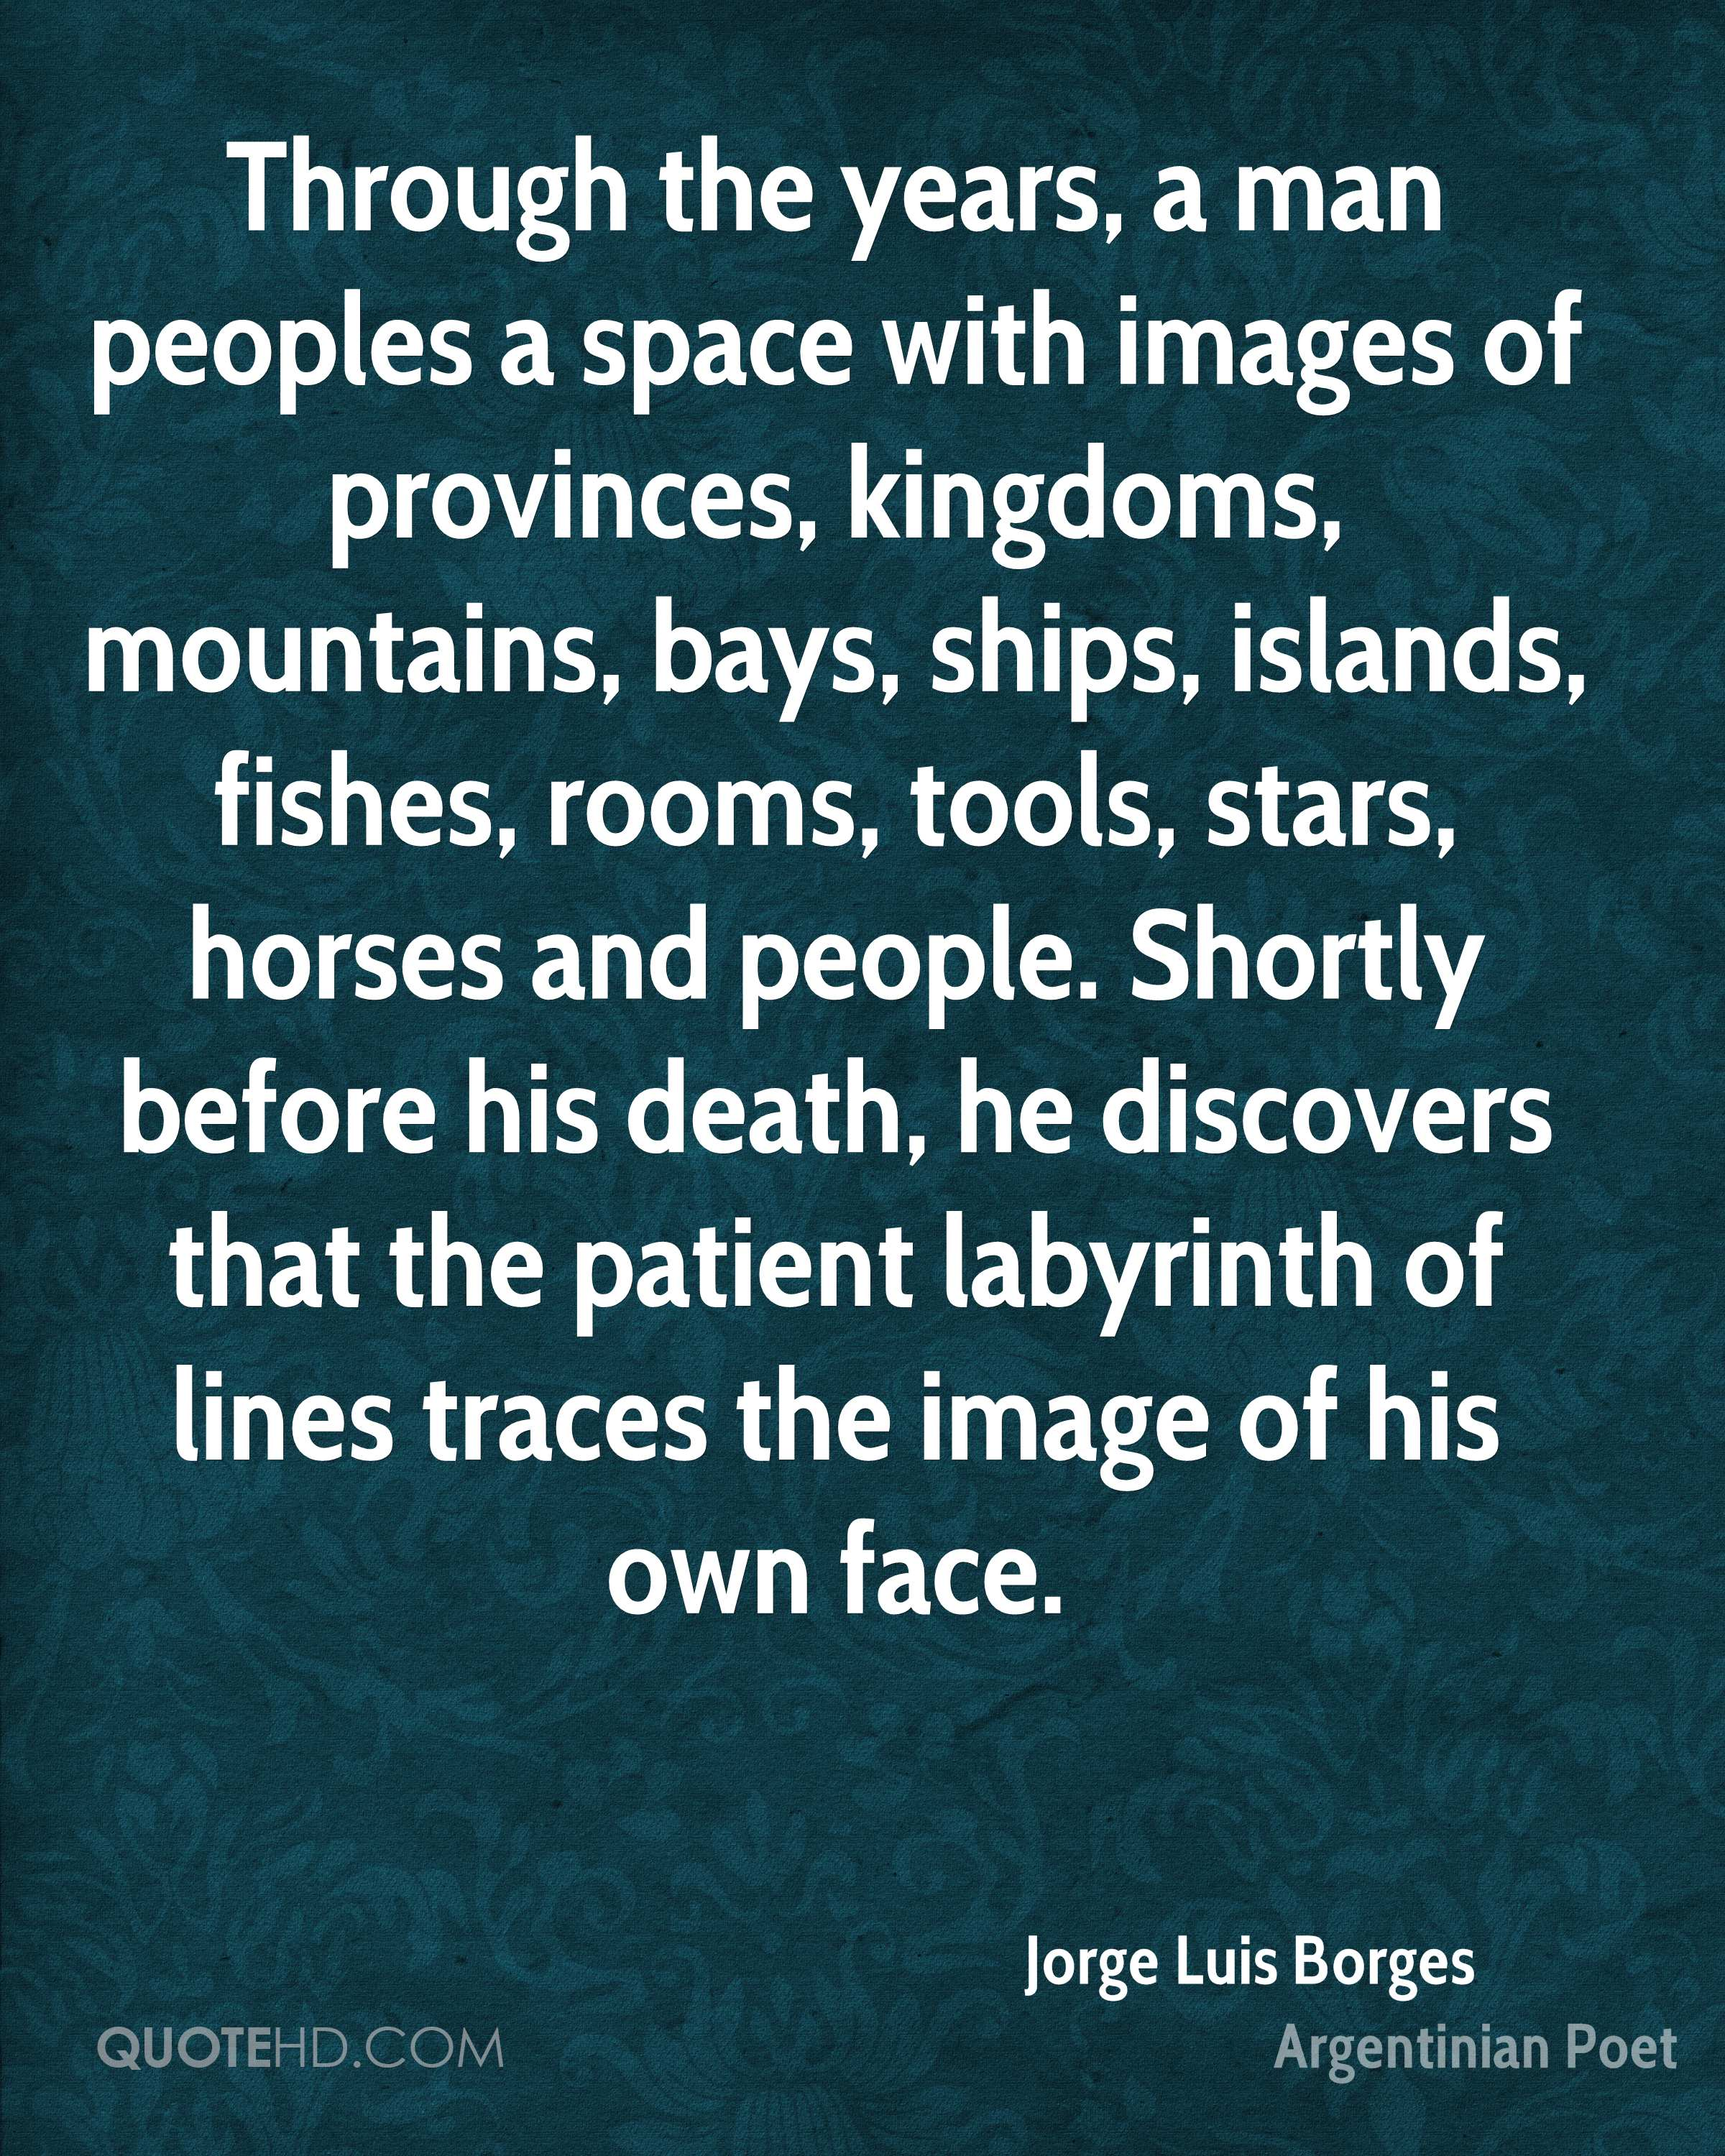 Through the years, a man peoples a space with images of provinces, kingdoms, mountains, bays, ships, islands, fishes, rooms, tools, stars, horses and people. Shortly before his death, he discovers that the patient labyrinth of lines traces the image of his own face.